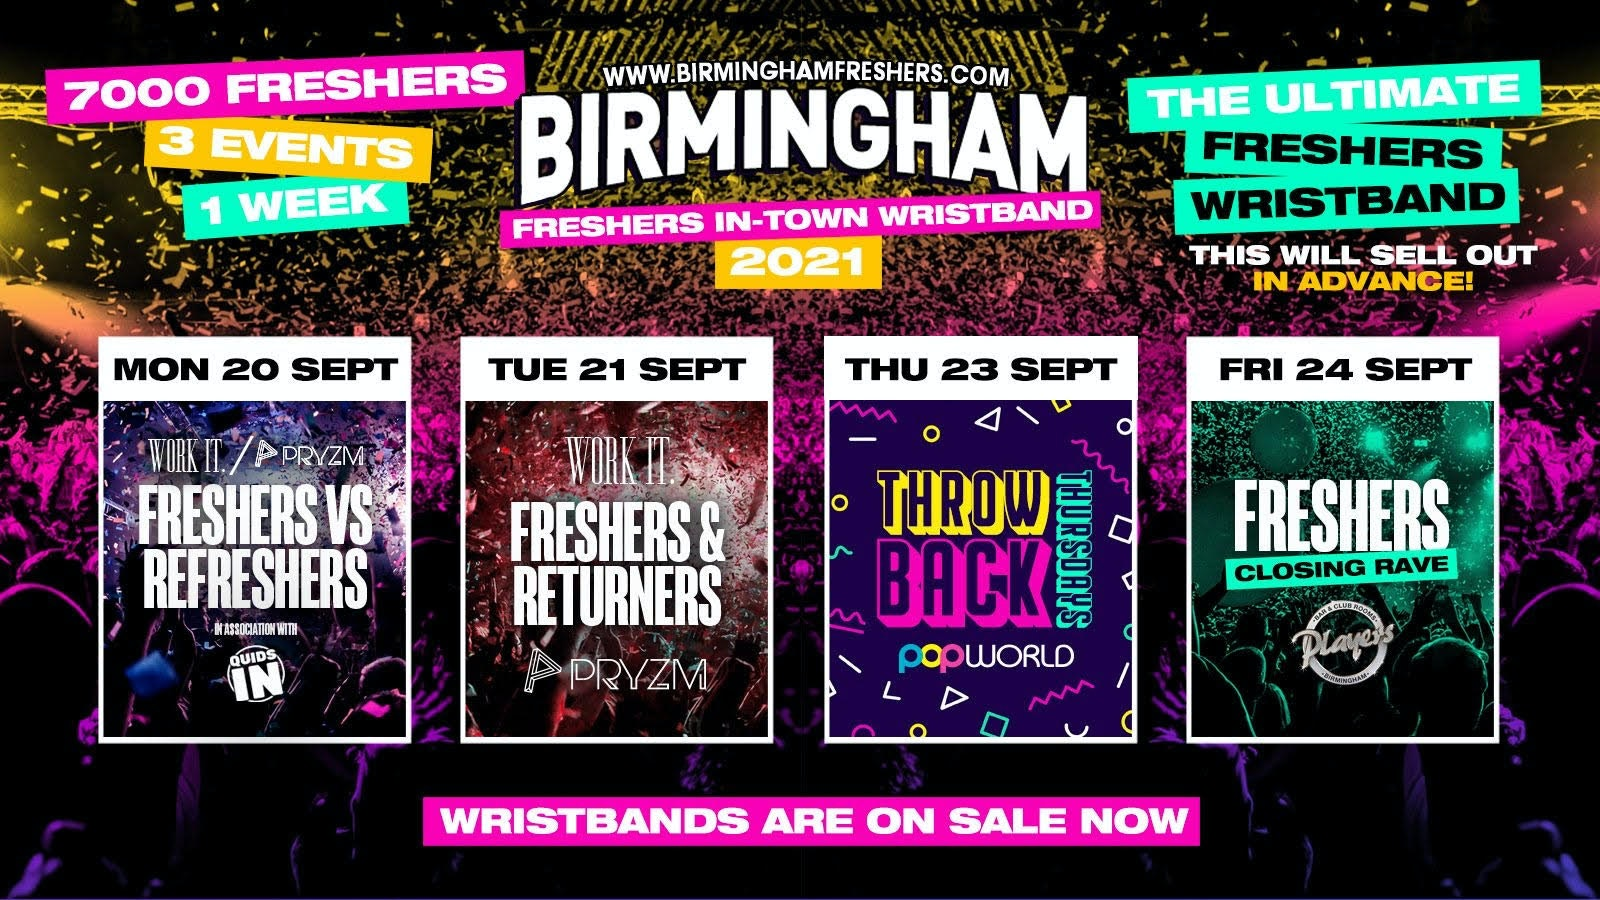 Birmingham Freshers Wristband 2021 – The Official Freshers Pass | Includes the biggest events in Birmingham